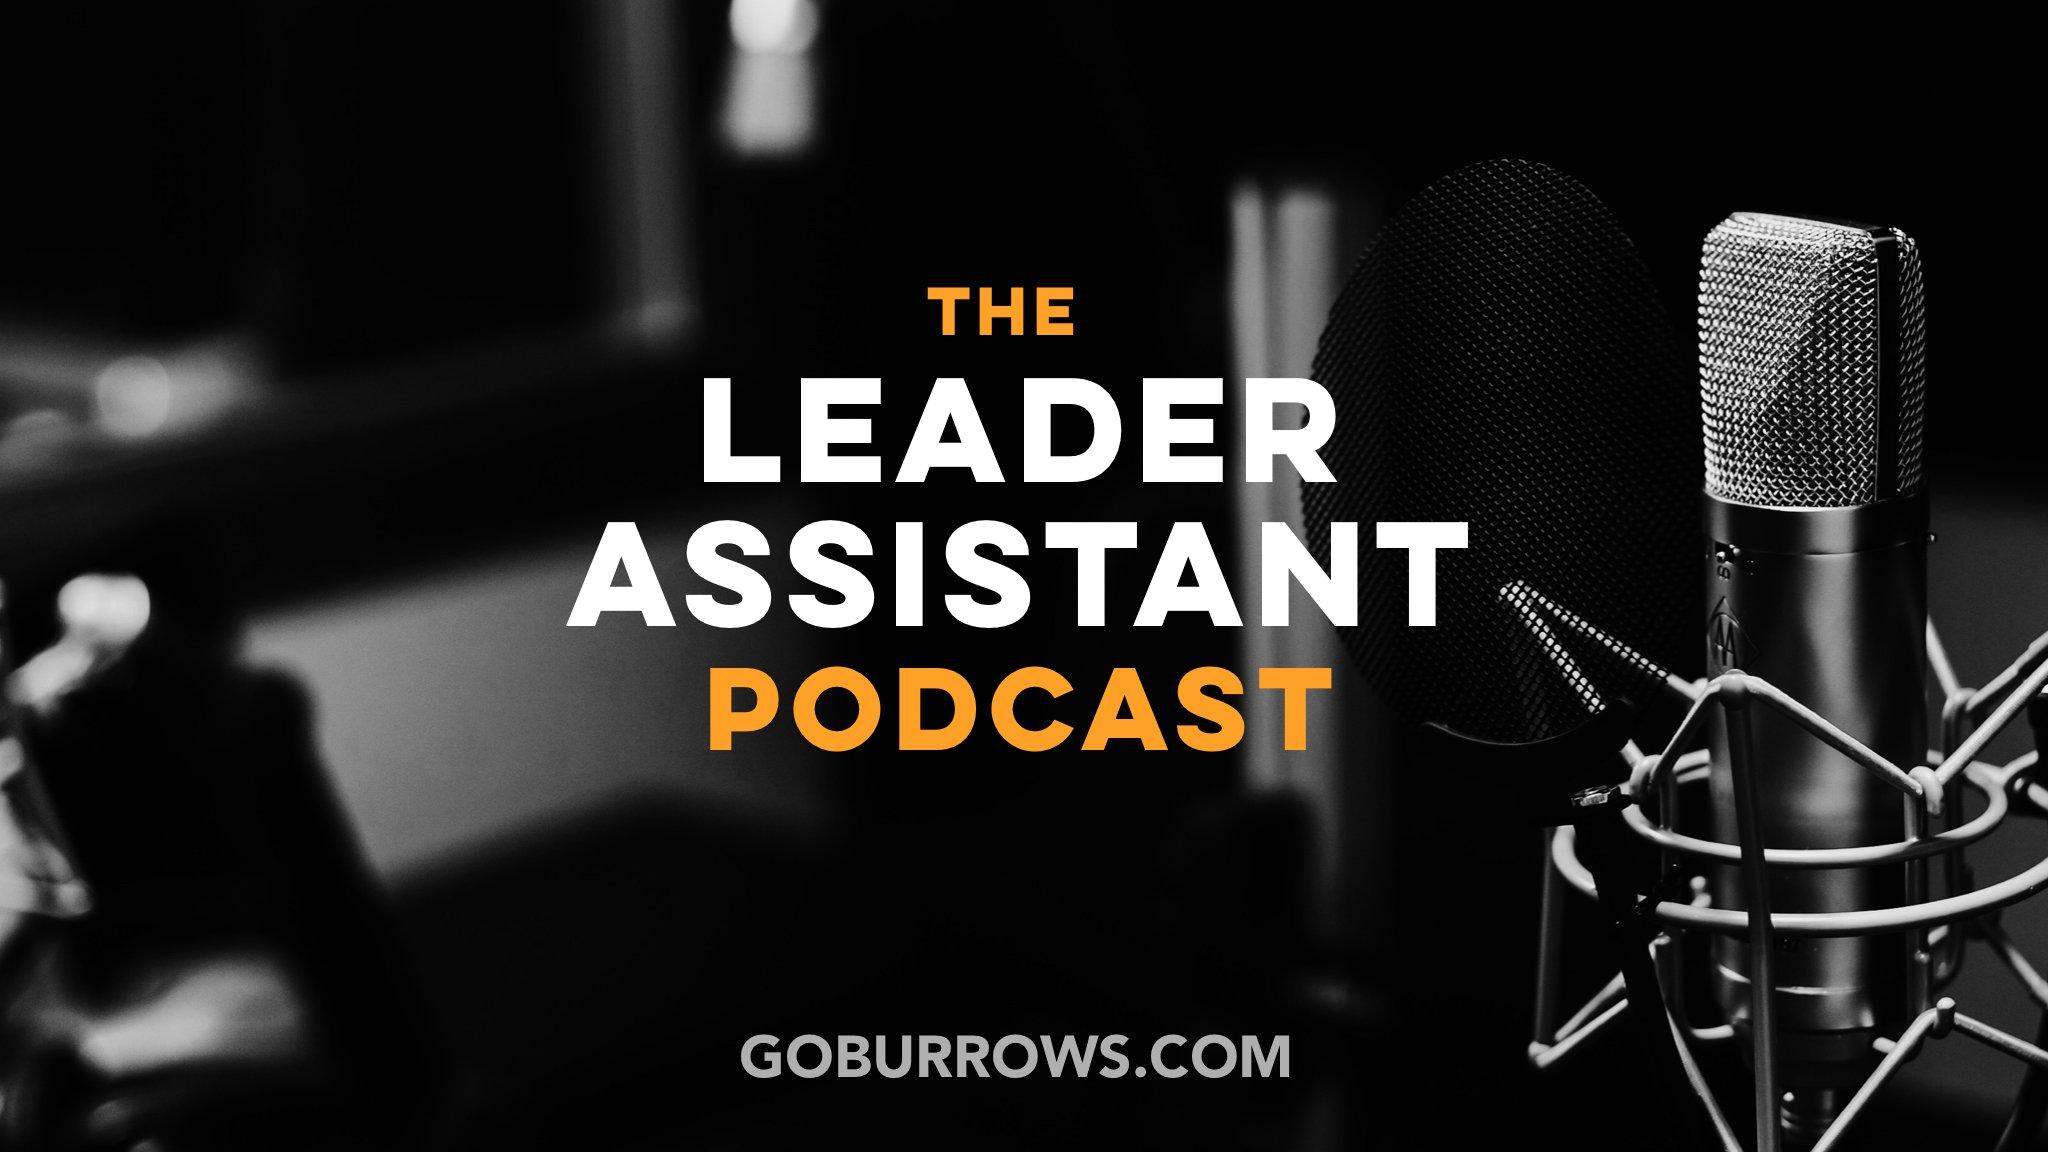 Top 5 Leader Assistant Podcast Interviews in 2019